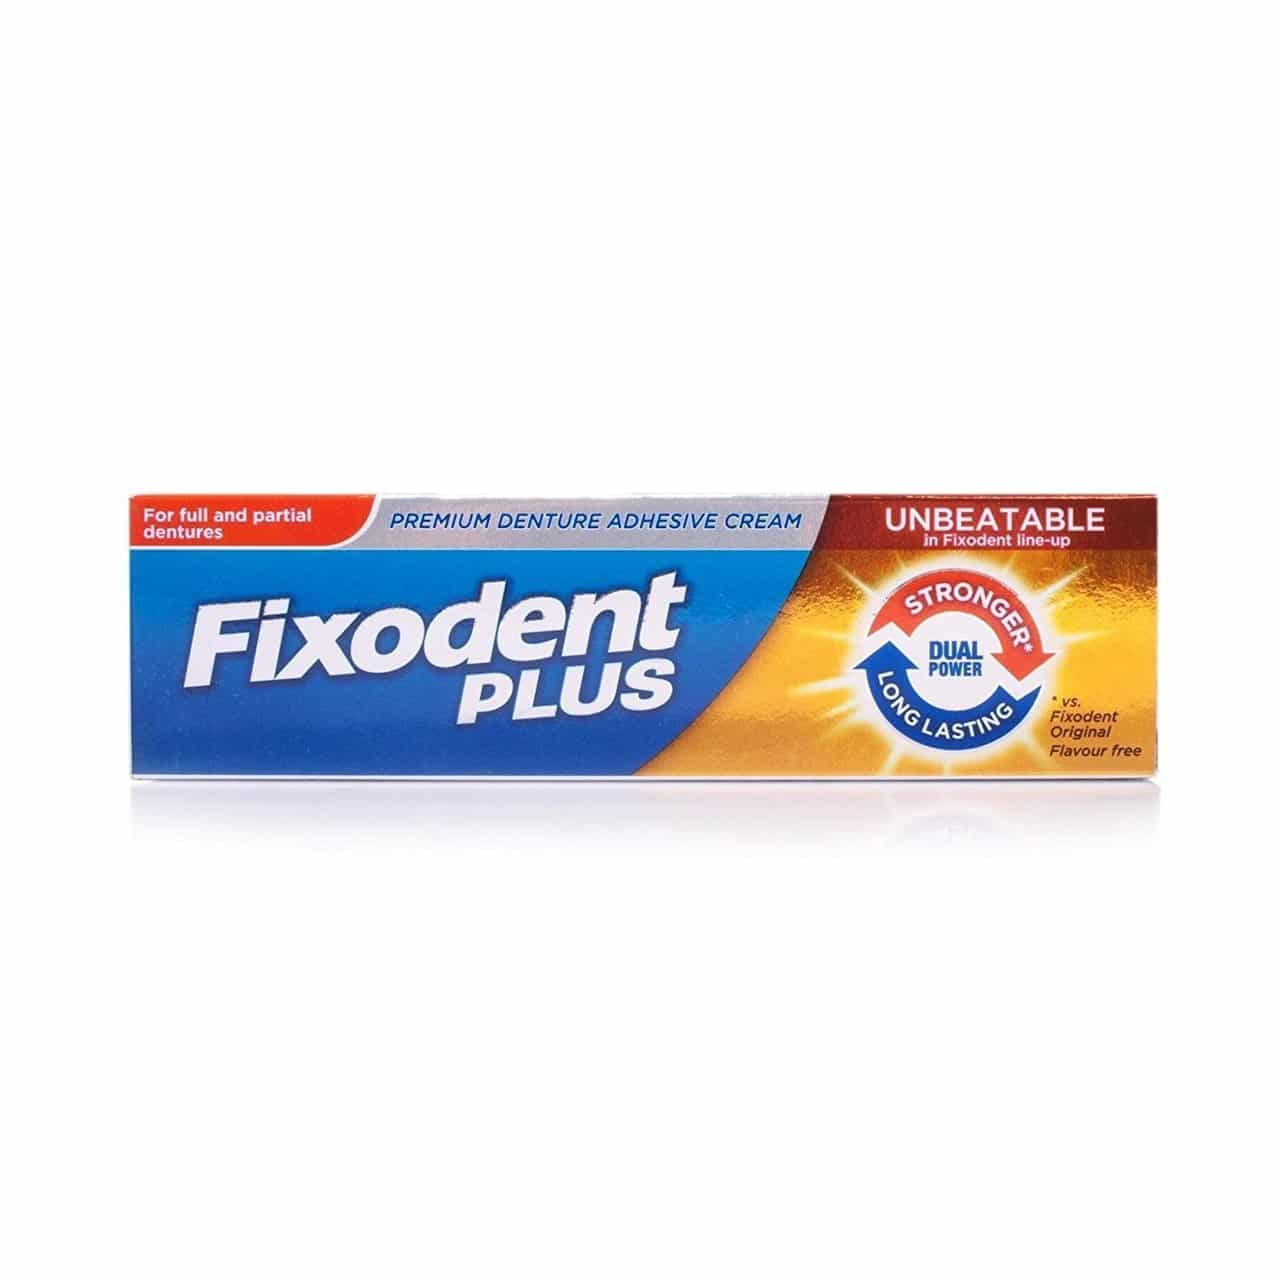 FIXODENT PLUS DUAL POWER (40G) (NEW)